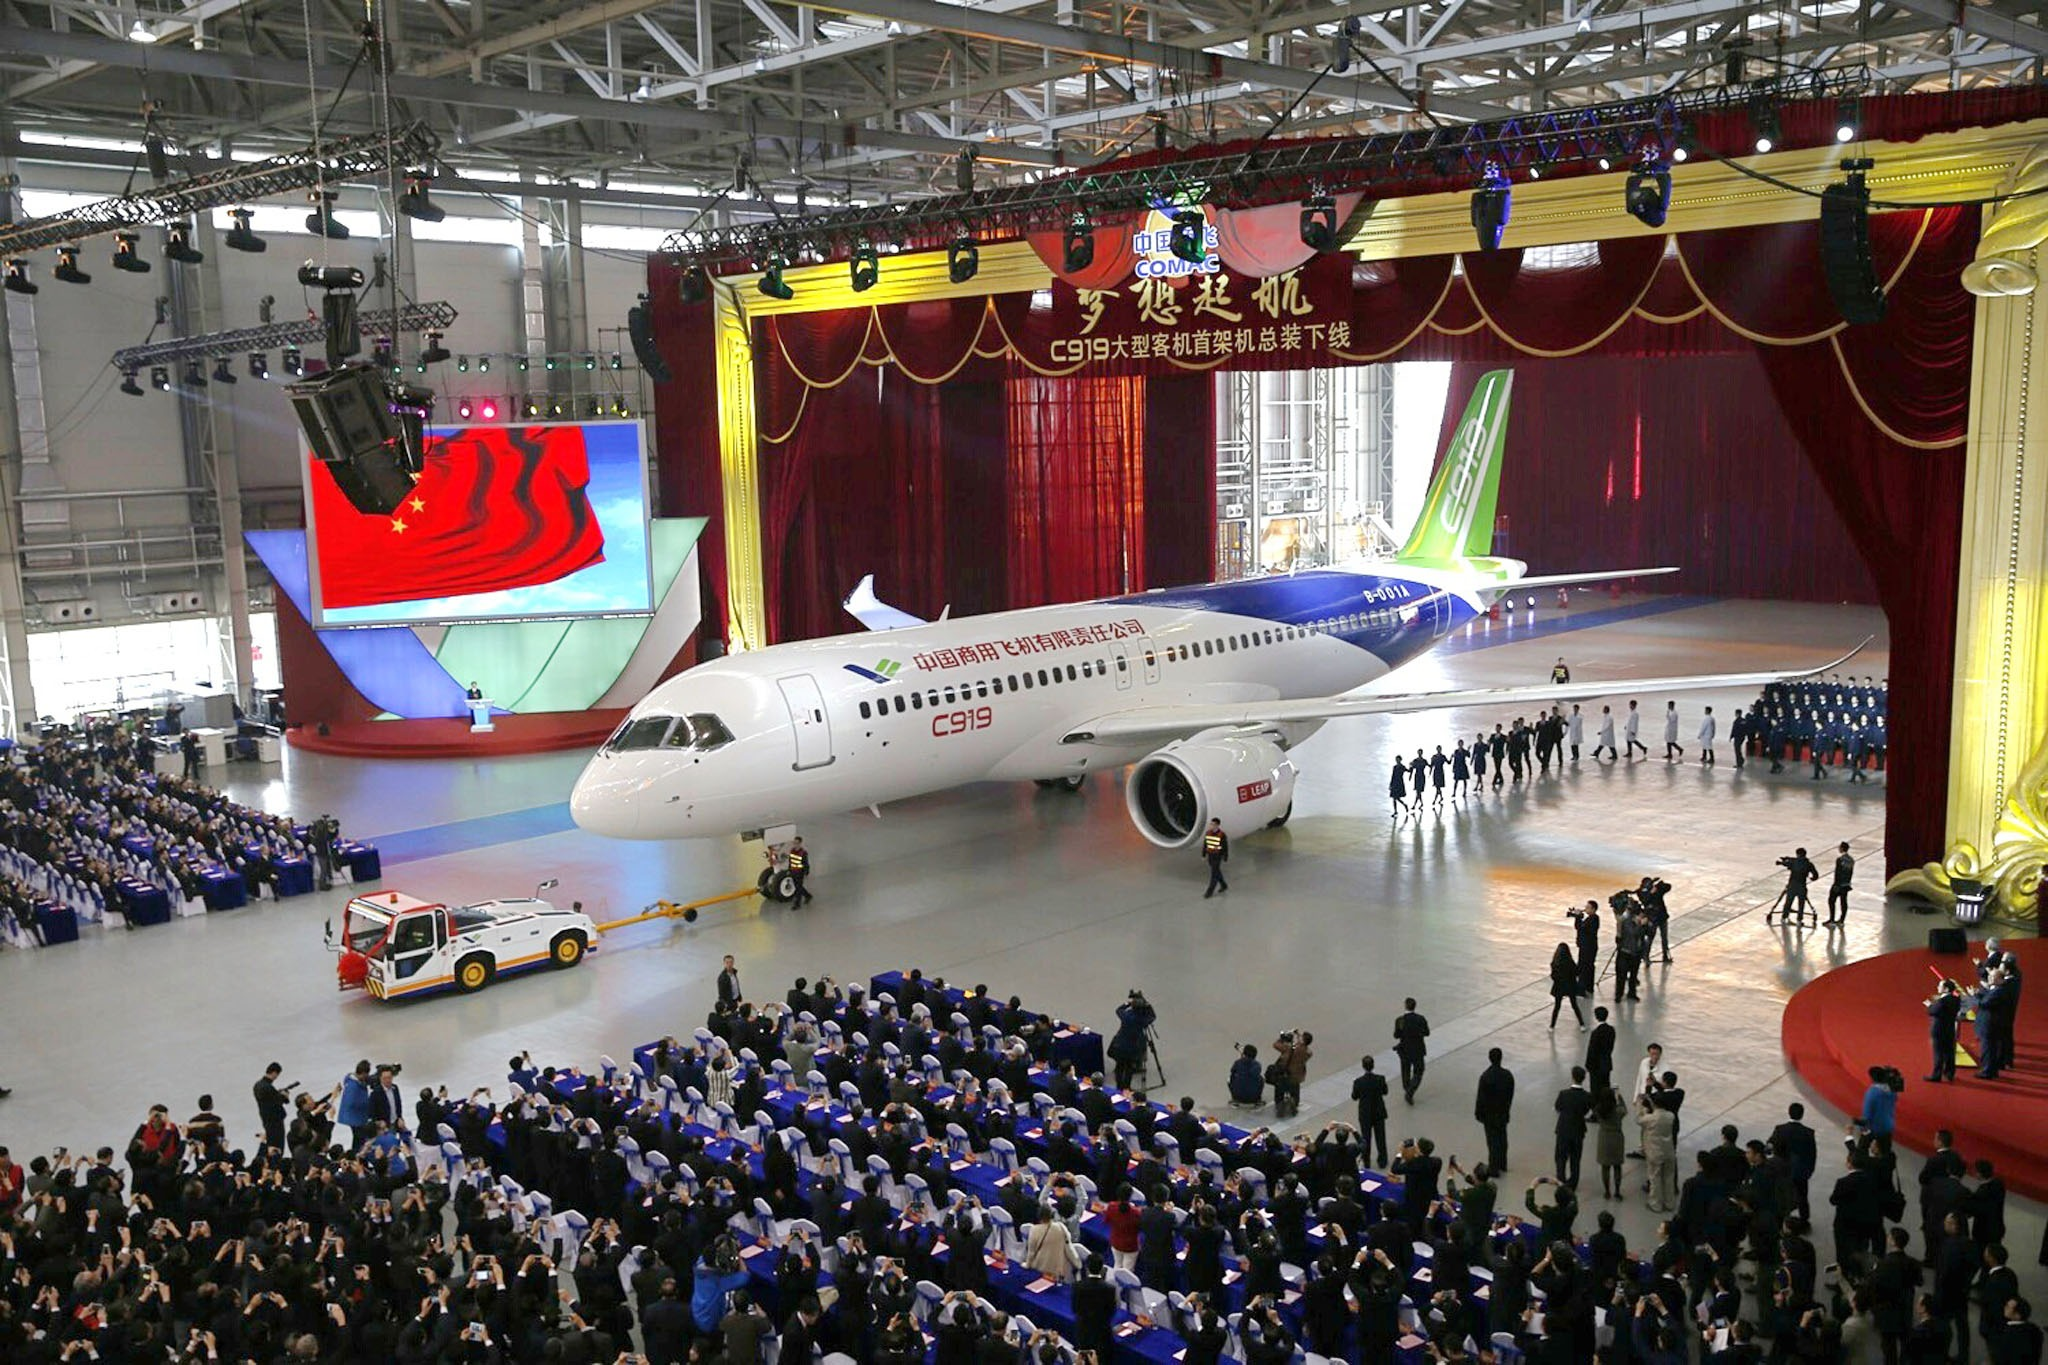 China's first homemade big passenger plane rolled off line